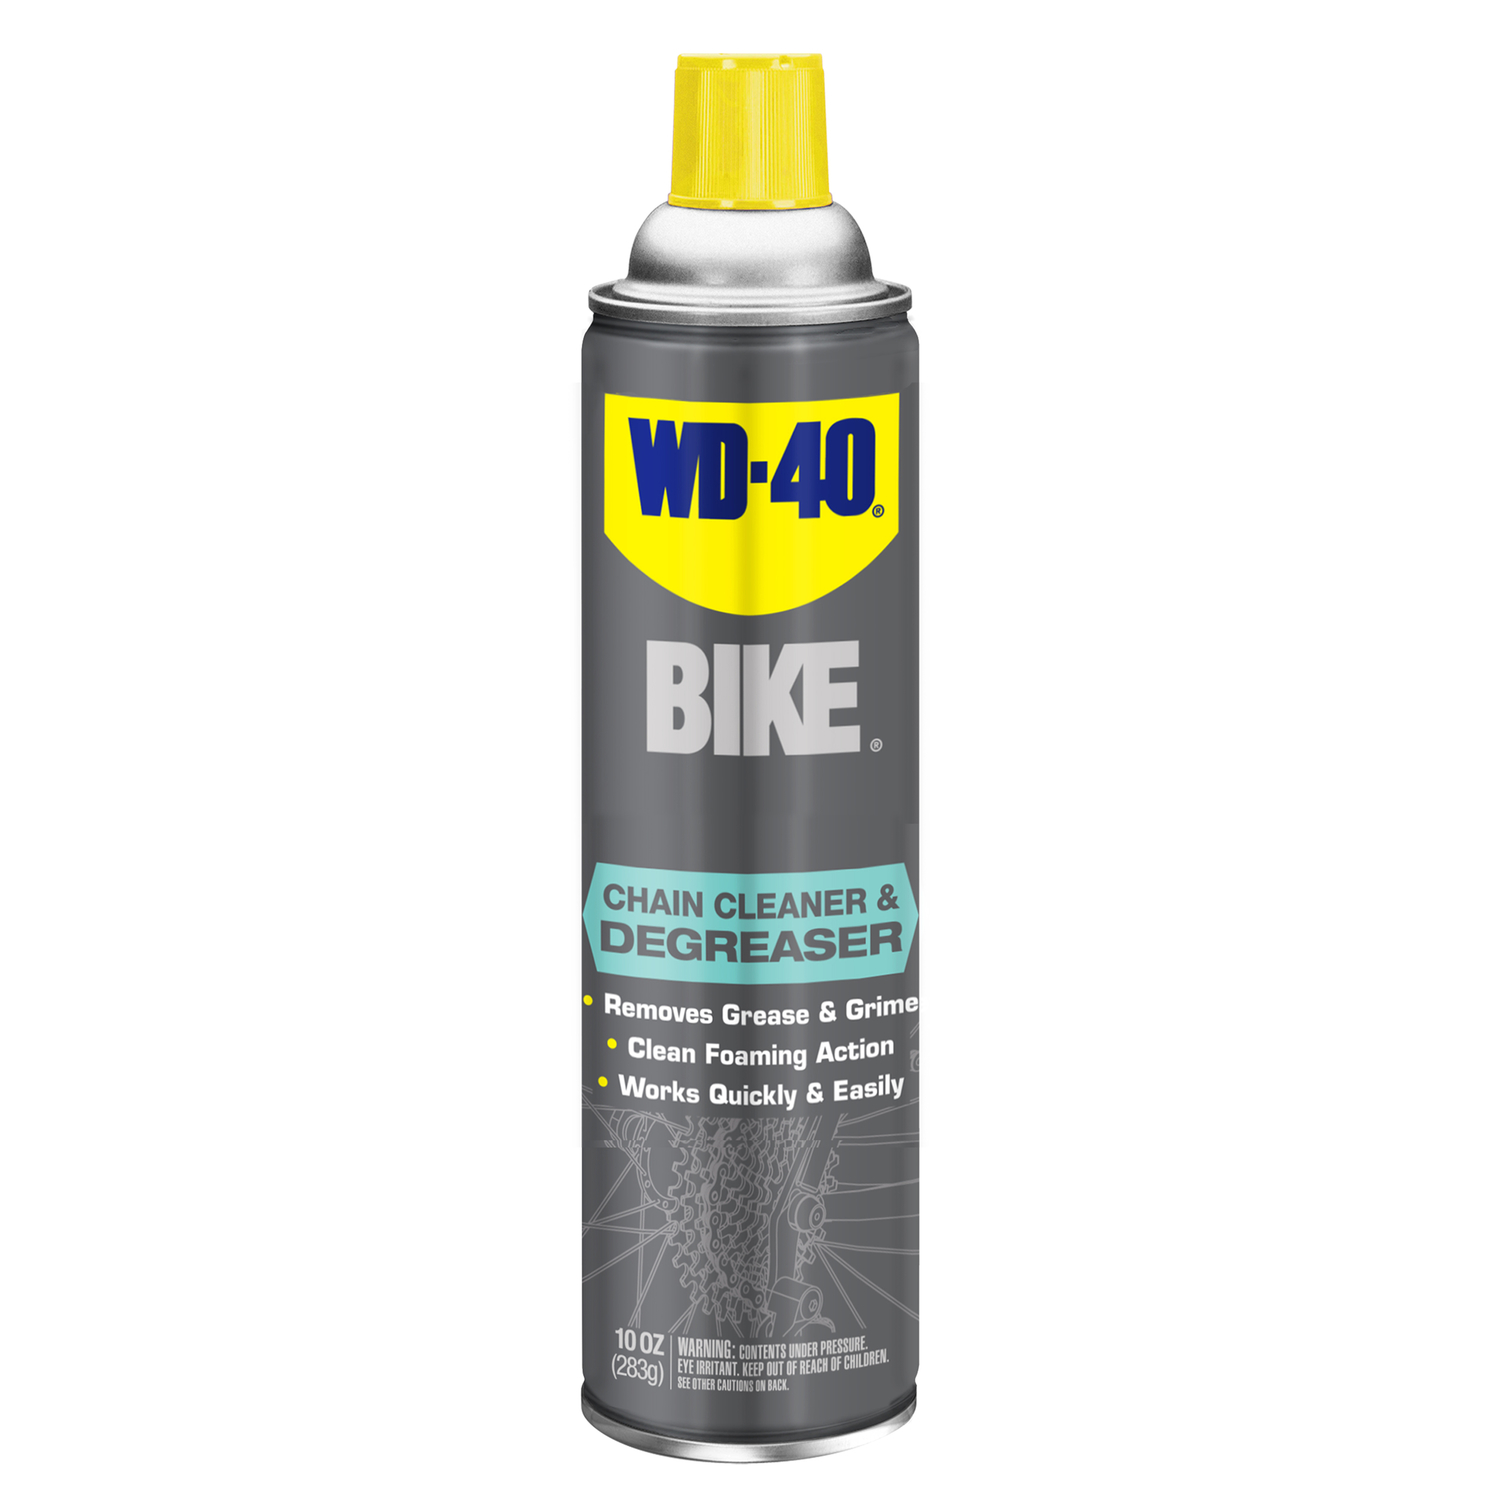 WD-40  Bike  Unscented Scent Chain Cleaner and Degreaser  10 oz. Spray